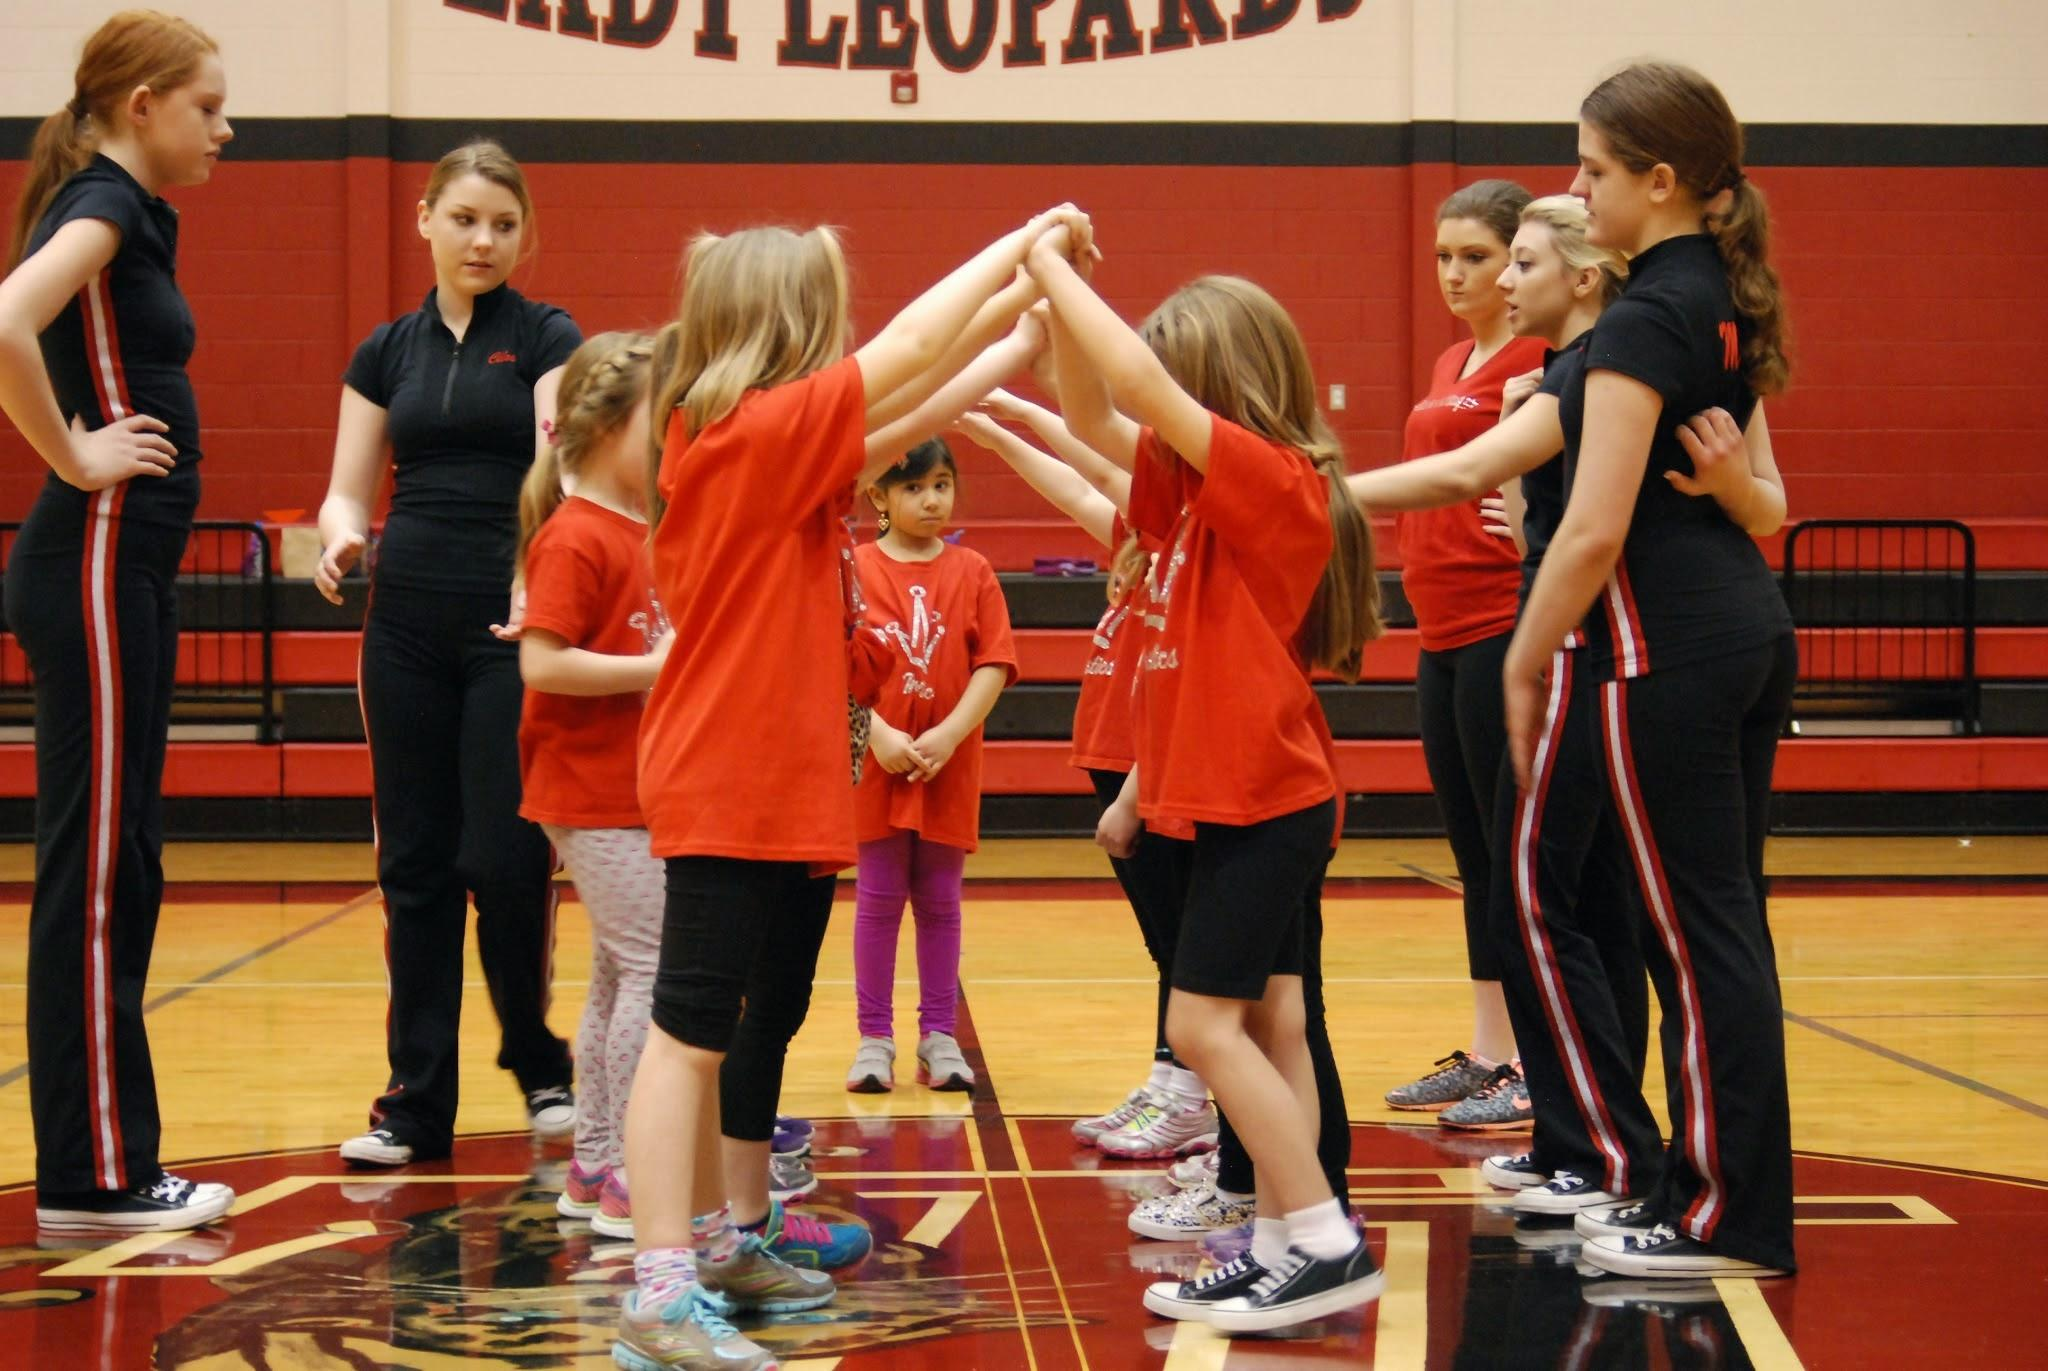 Elementary aged girls practice their tunnel dance move for their performance.